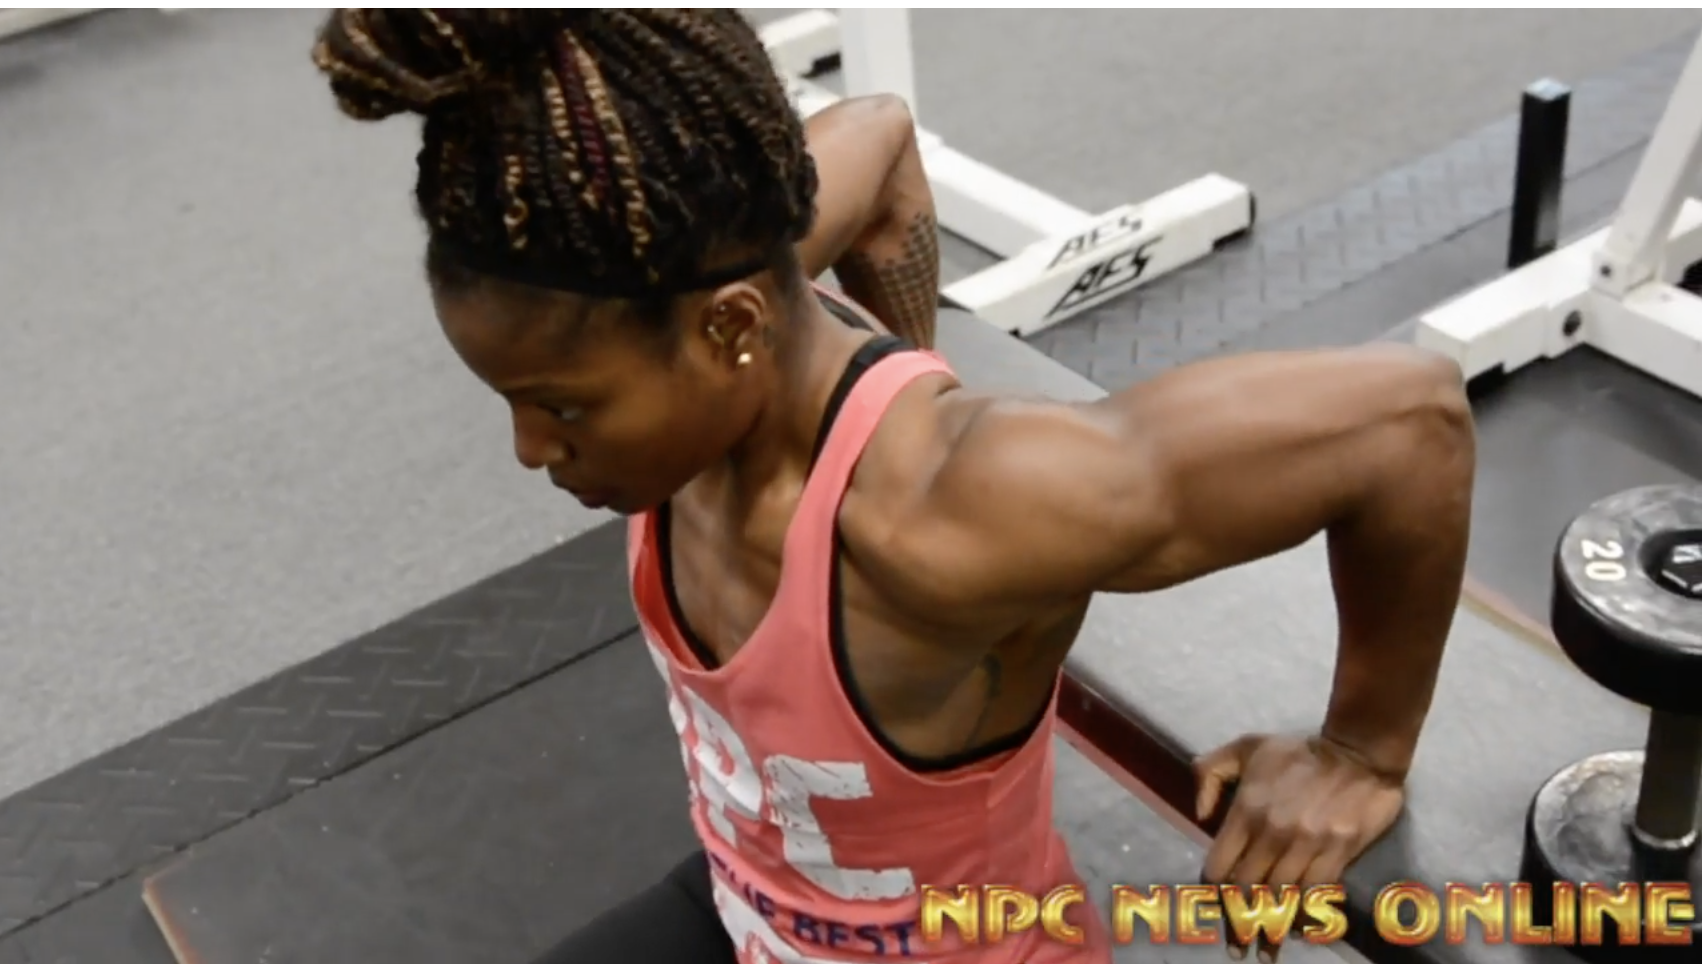 IFBB Figure Oympia Champ Cydney Gillon Chest/Triceps Workout Video